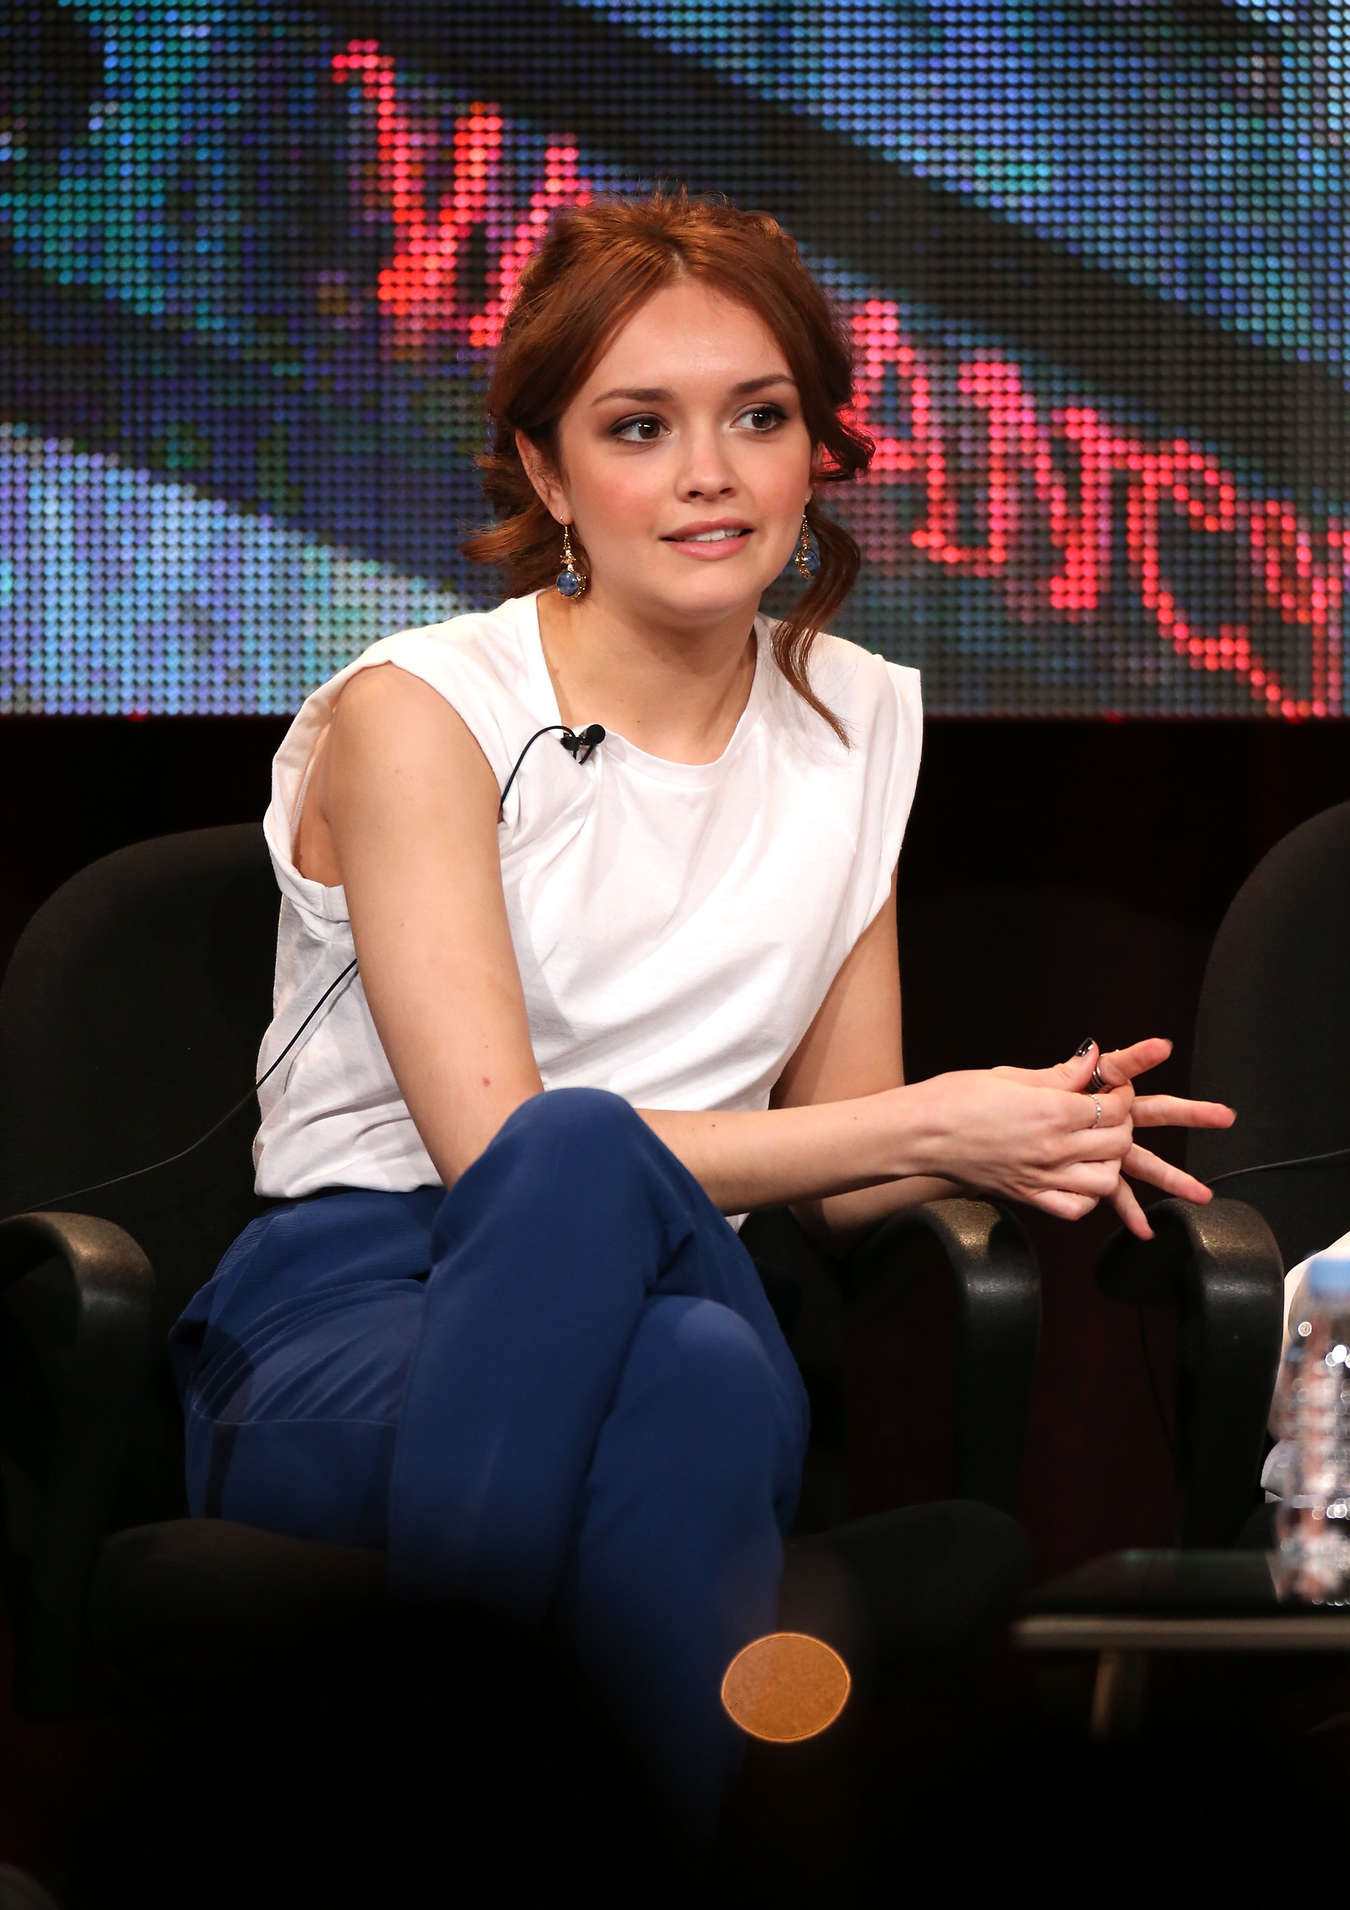 olivia cooke hot Quotes Girls Tv Show Quotes